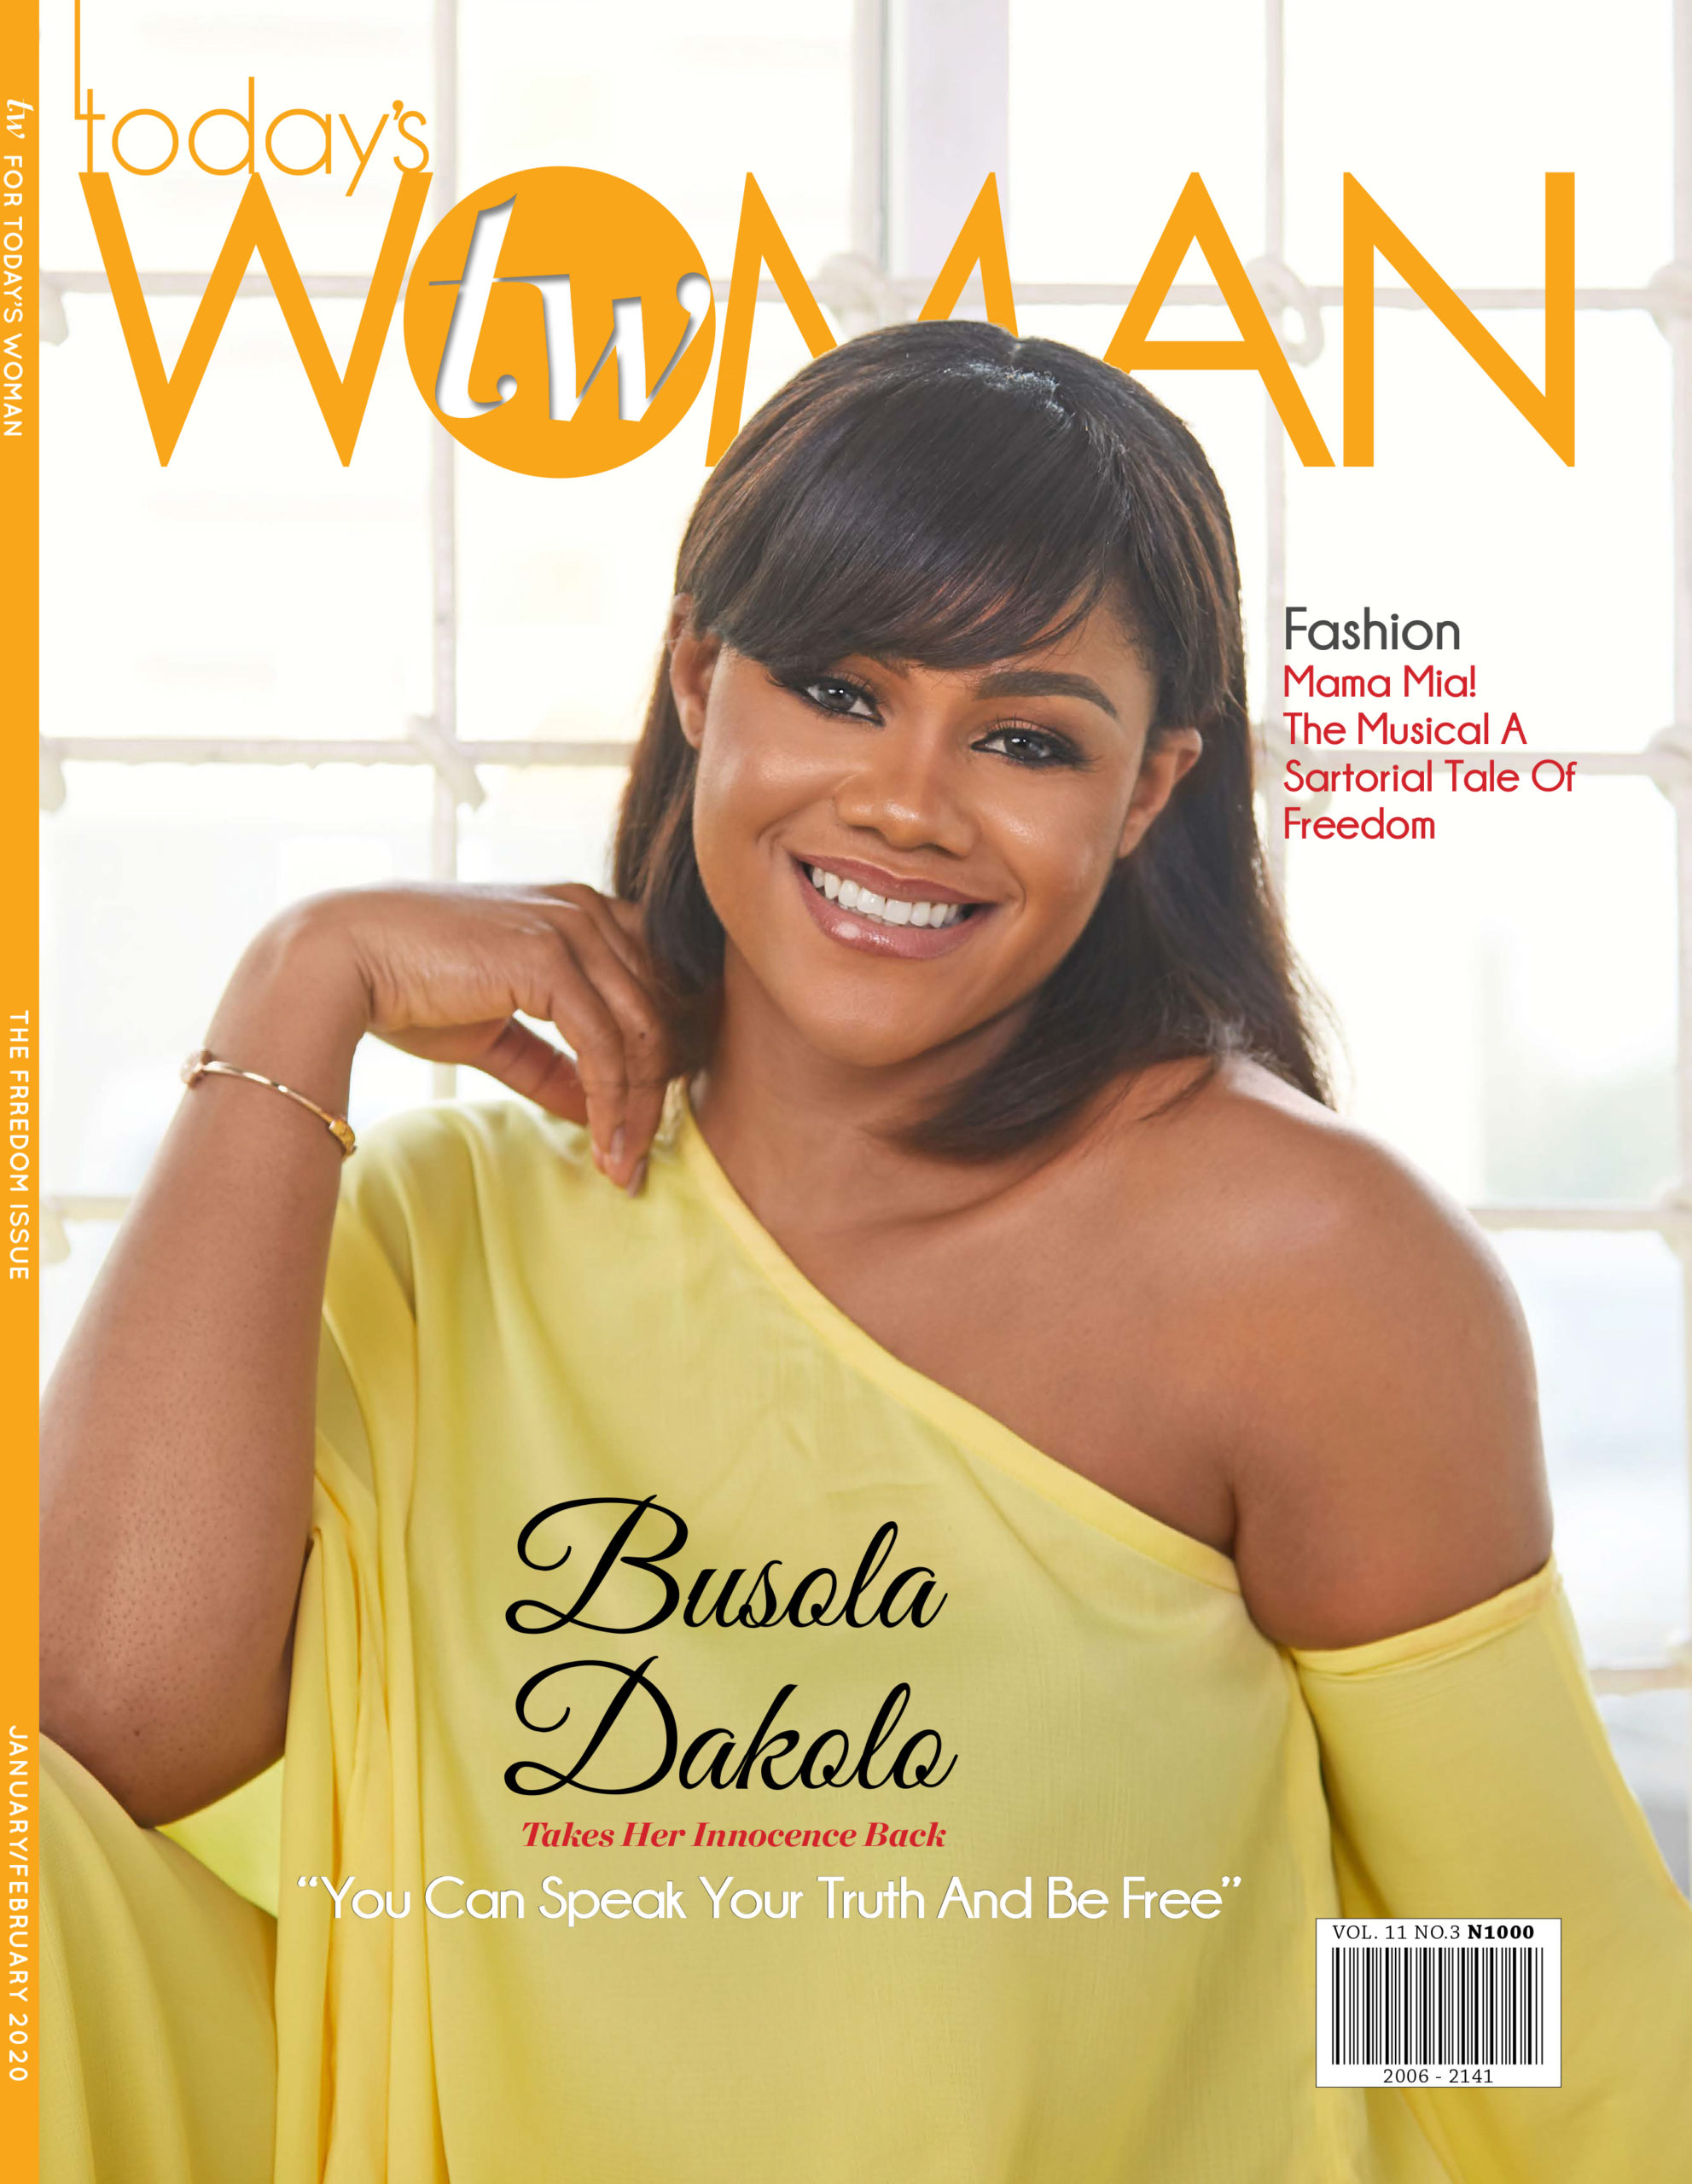 Busola Dakolo is the Face of Freedom in this Special Issue of TW Magazine